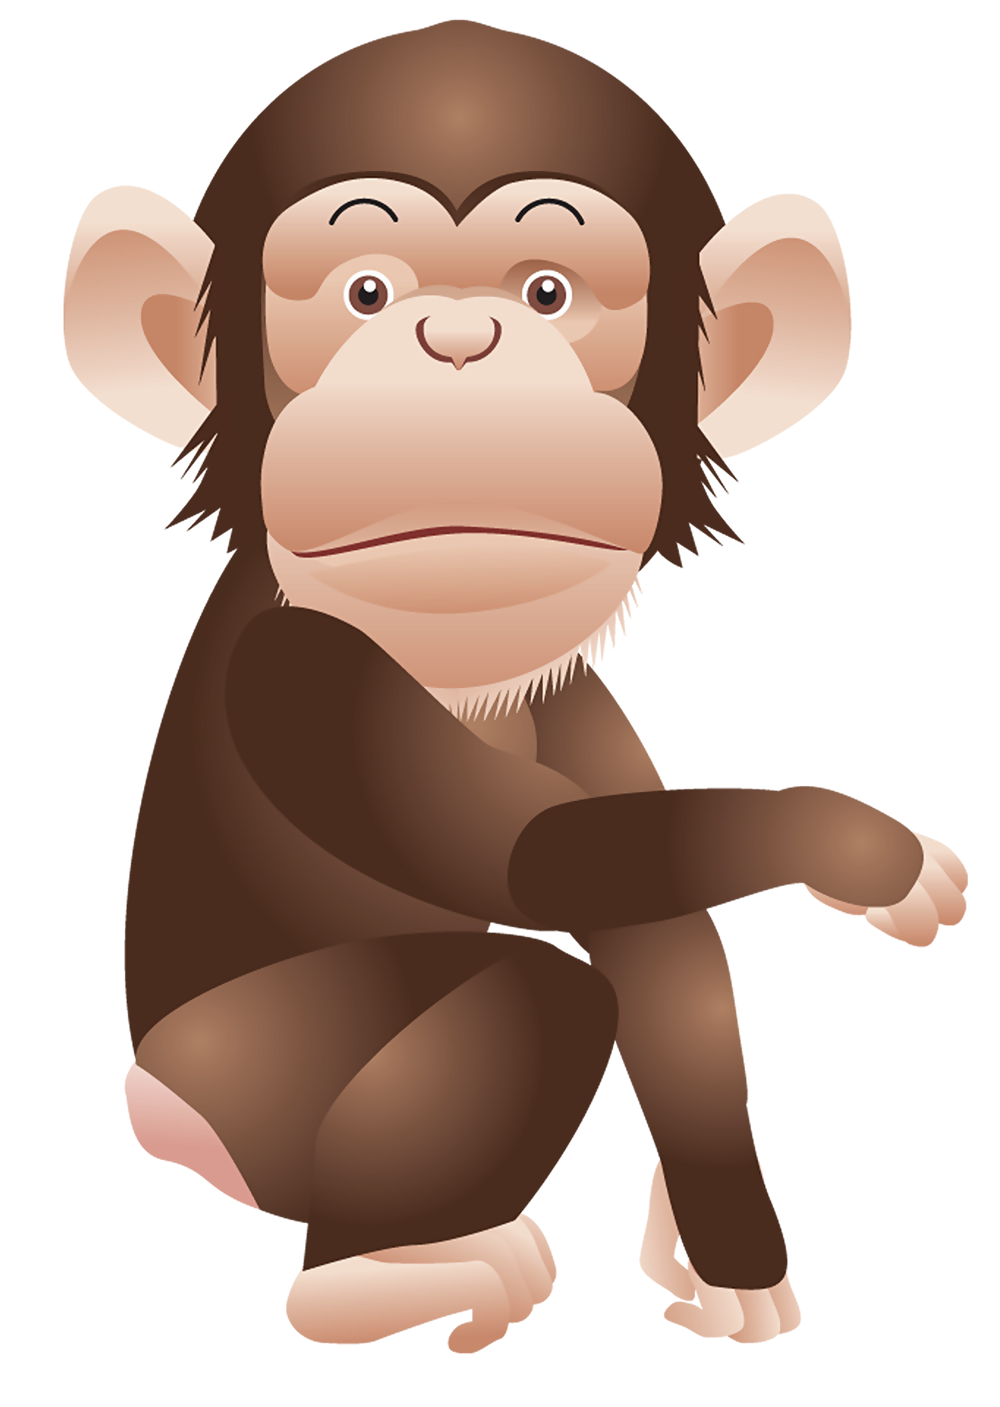 Monkey png animal pinterest. Monkeys clipart chimpanzee